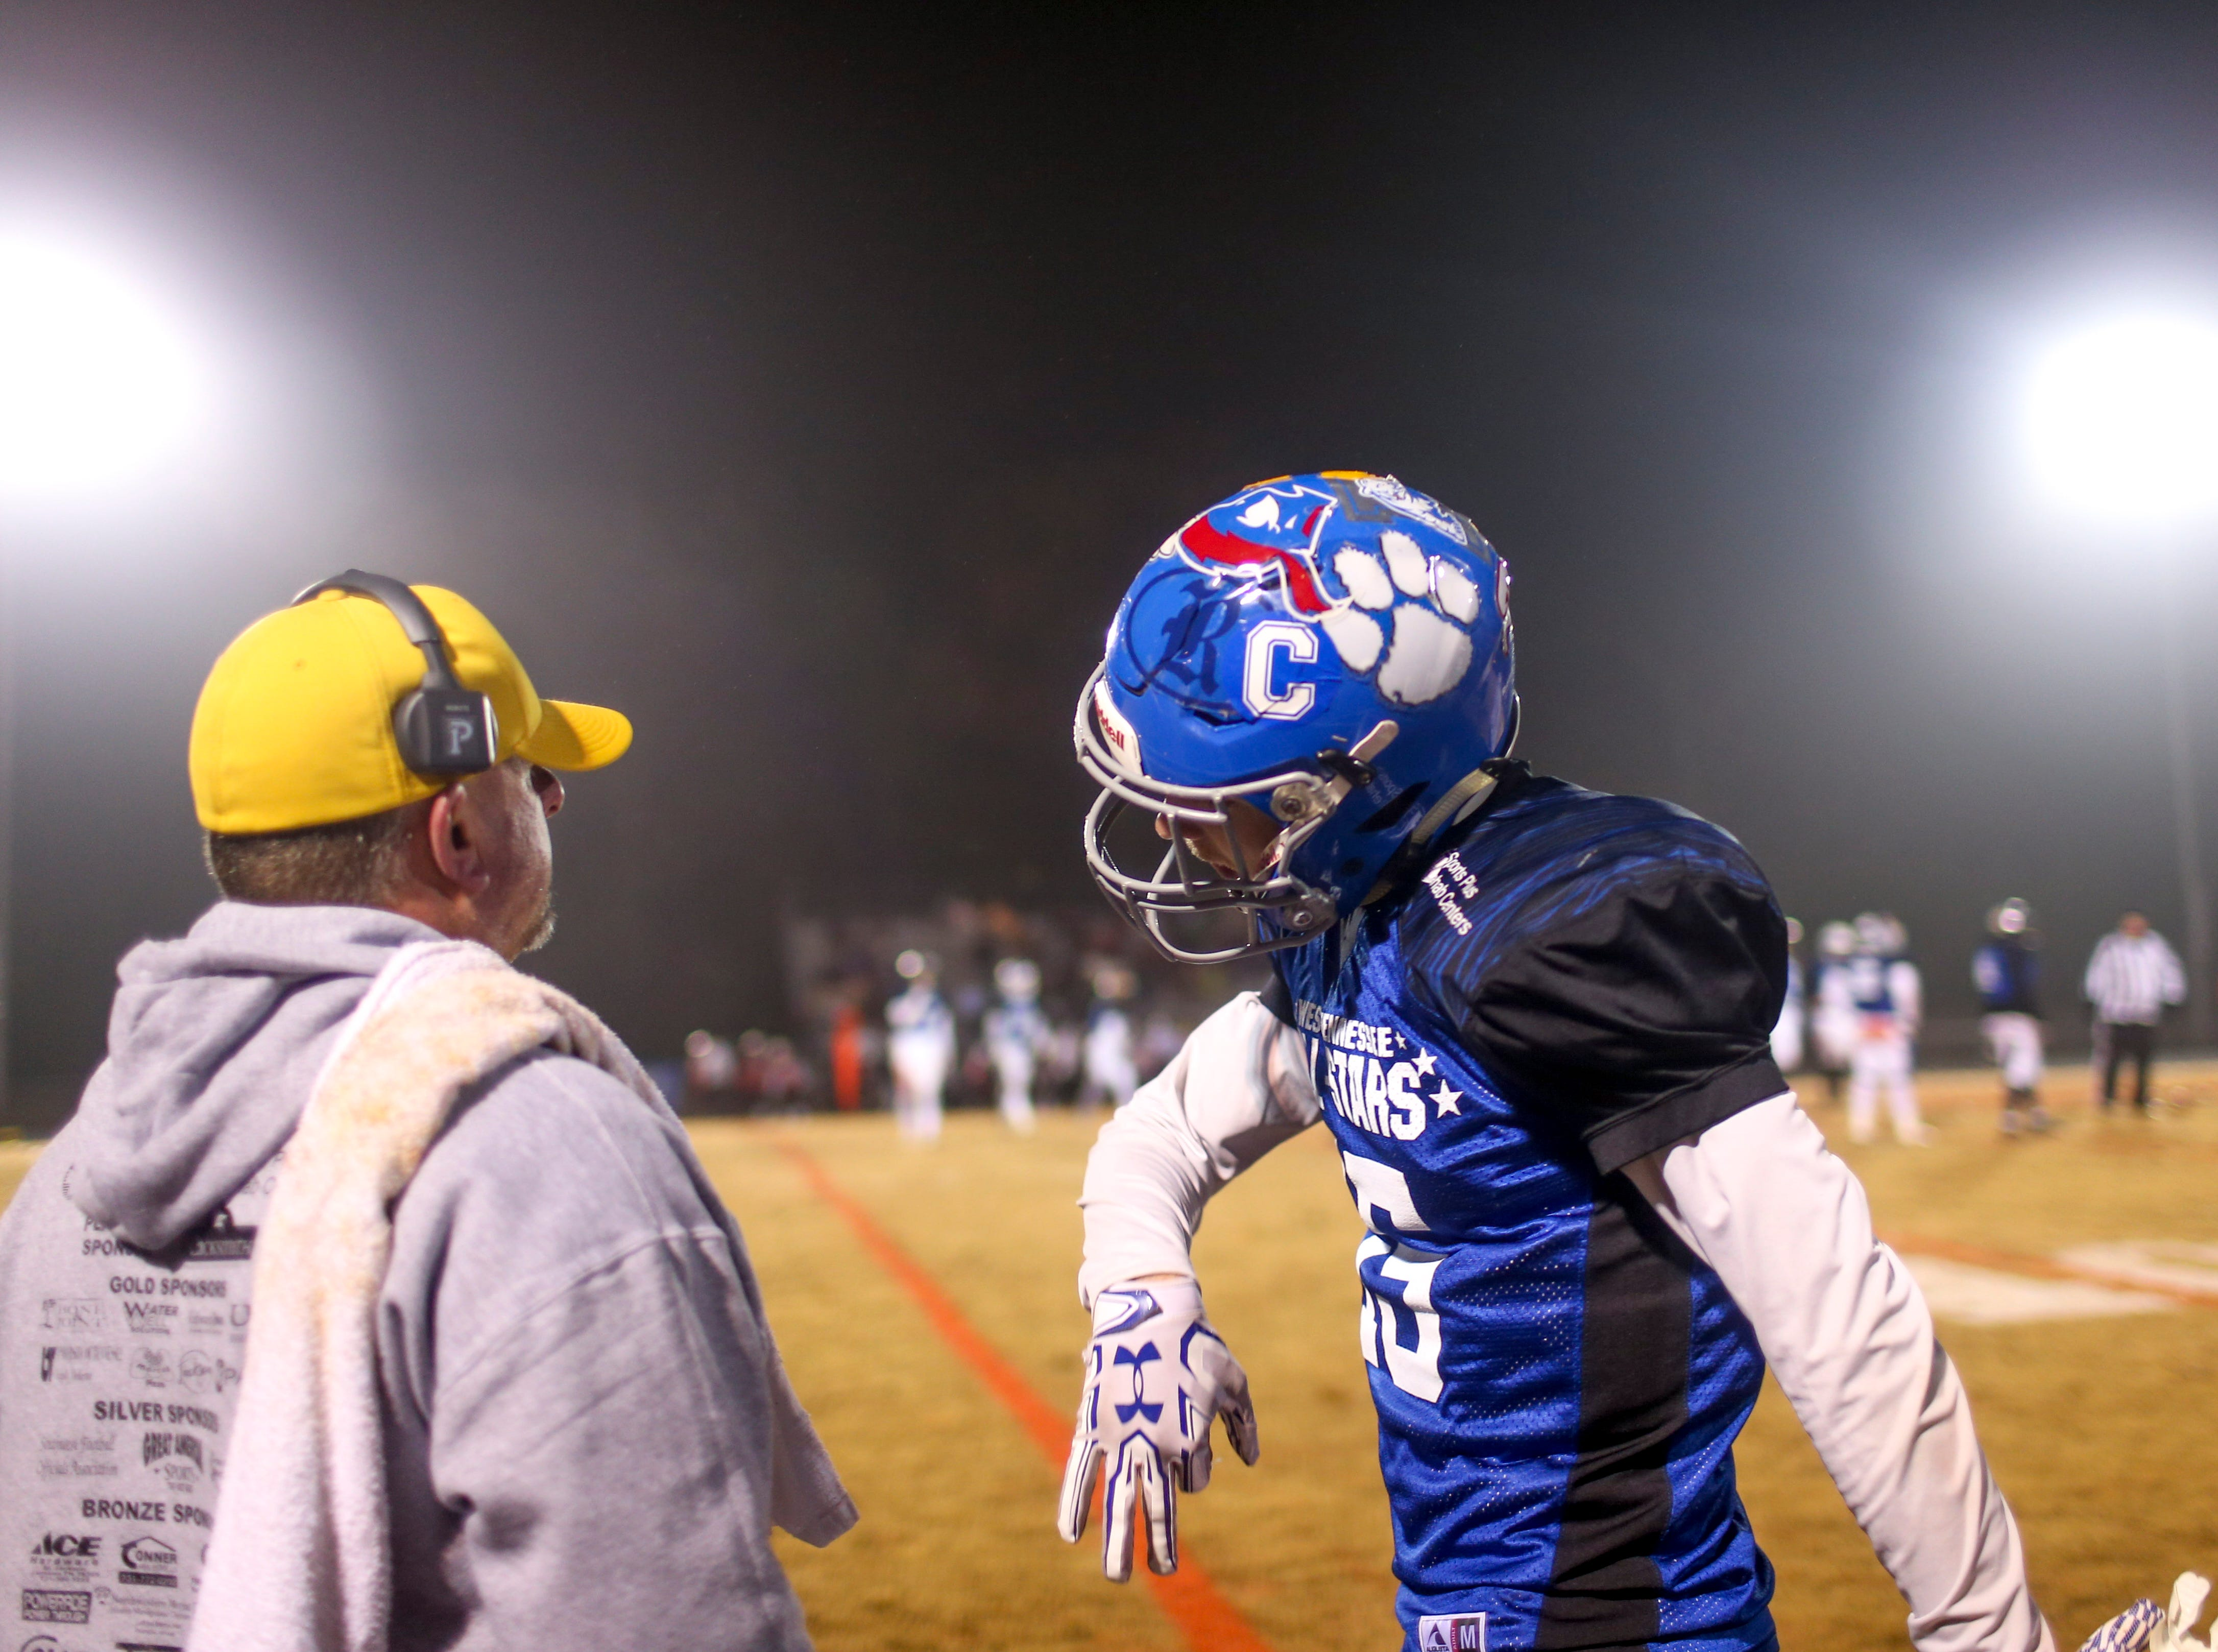 Bruceton's Zane Mebane (15) walks back and celebrates with Riverside's head coach Johnnie Frost during the West Tennessee All-Star football game at University School of Jackson in Jackson, Tenn., on Friday, Dec. 7, 2018.